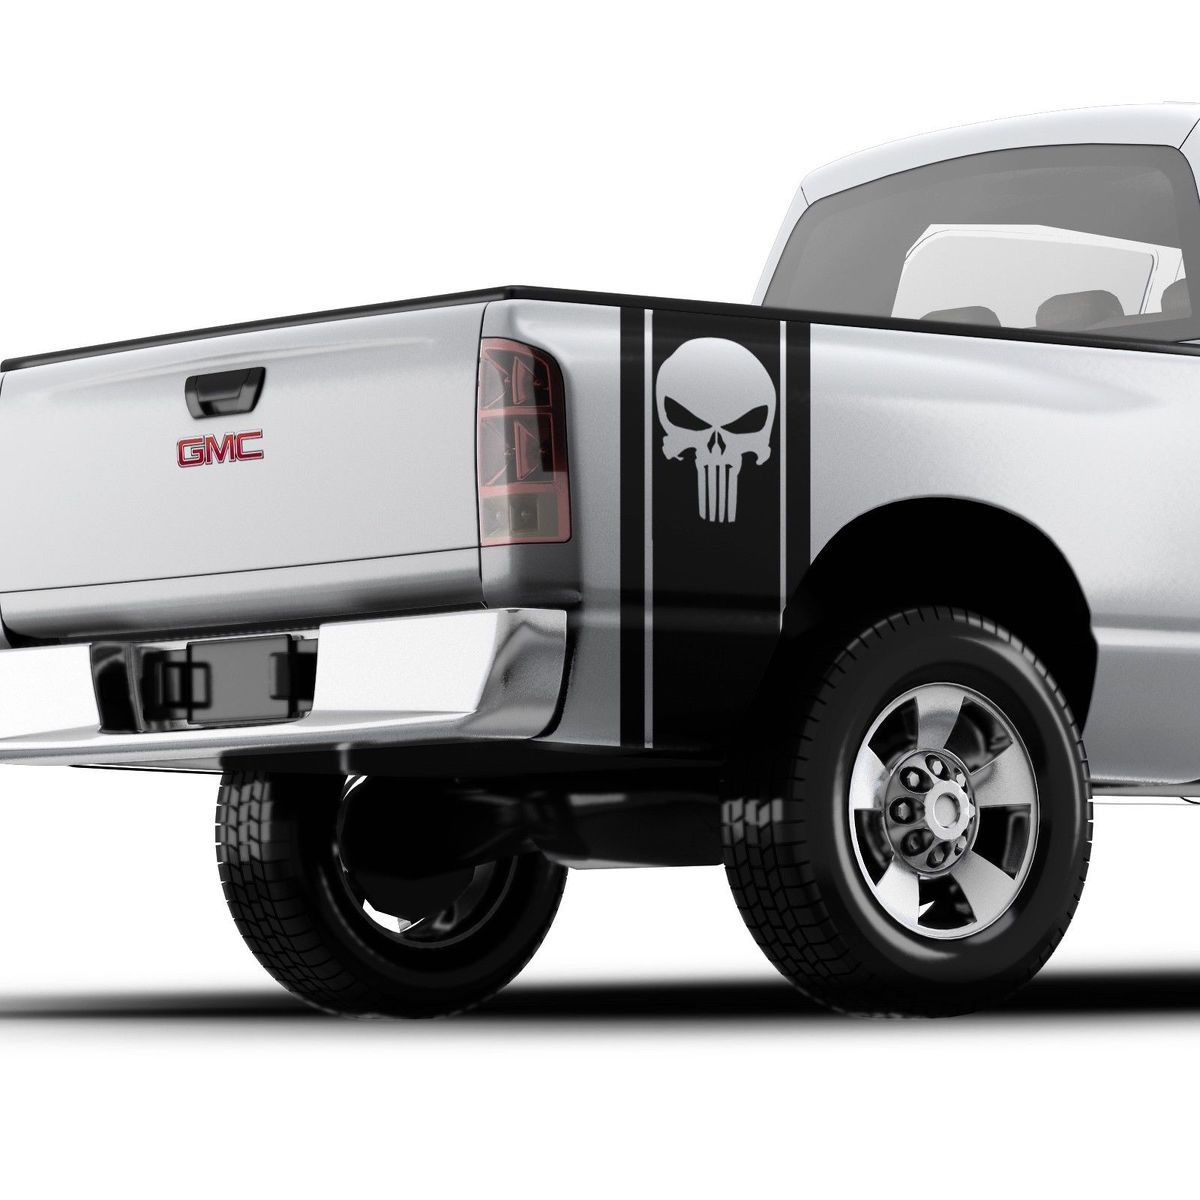 Punisher Skull Pickup Truck Bed Band Fits all GMC , FORD , RAM , Chevrolet truck